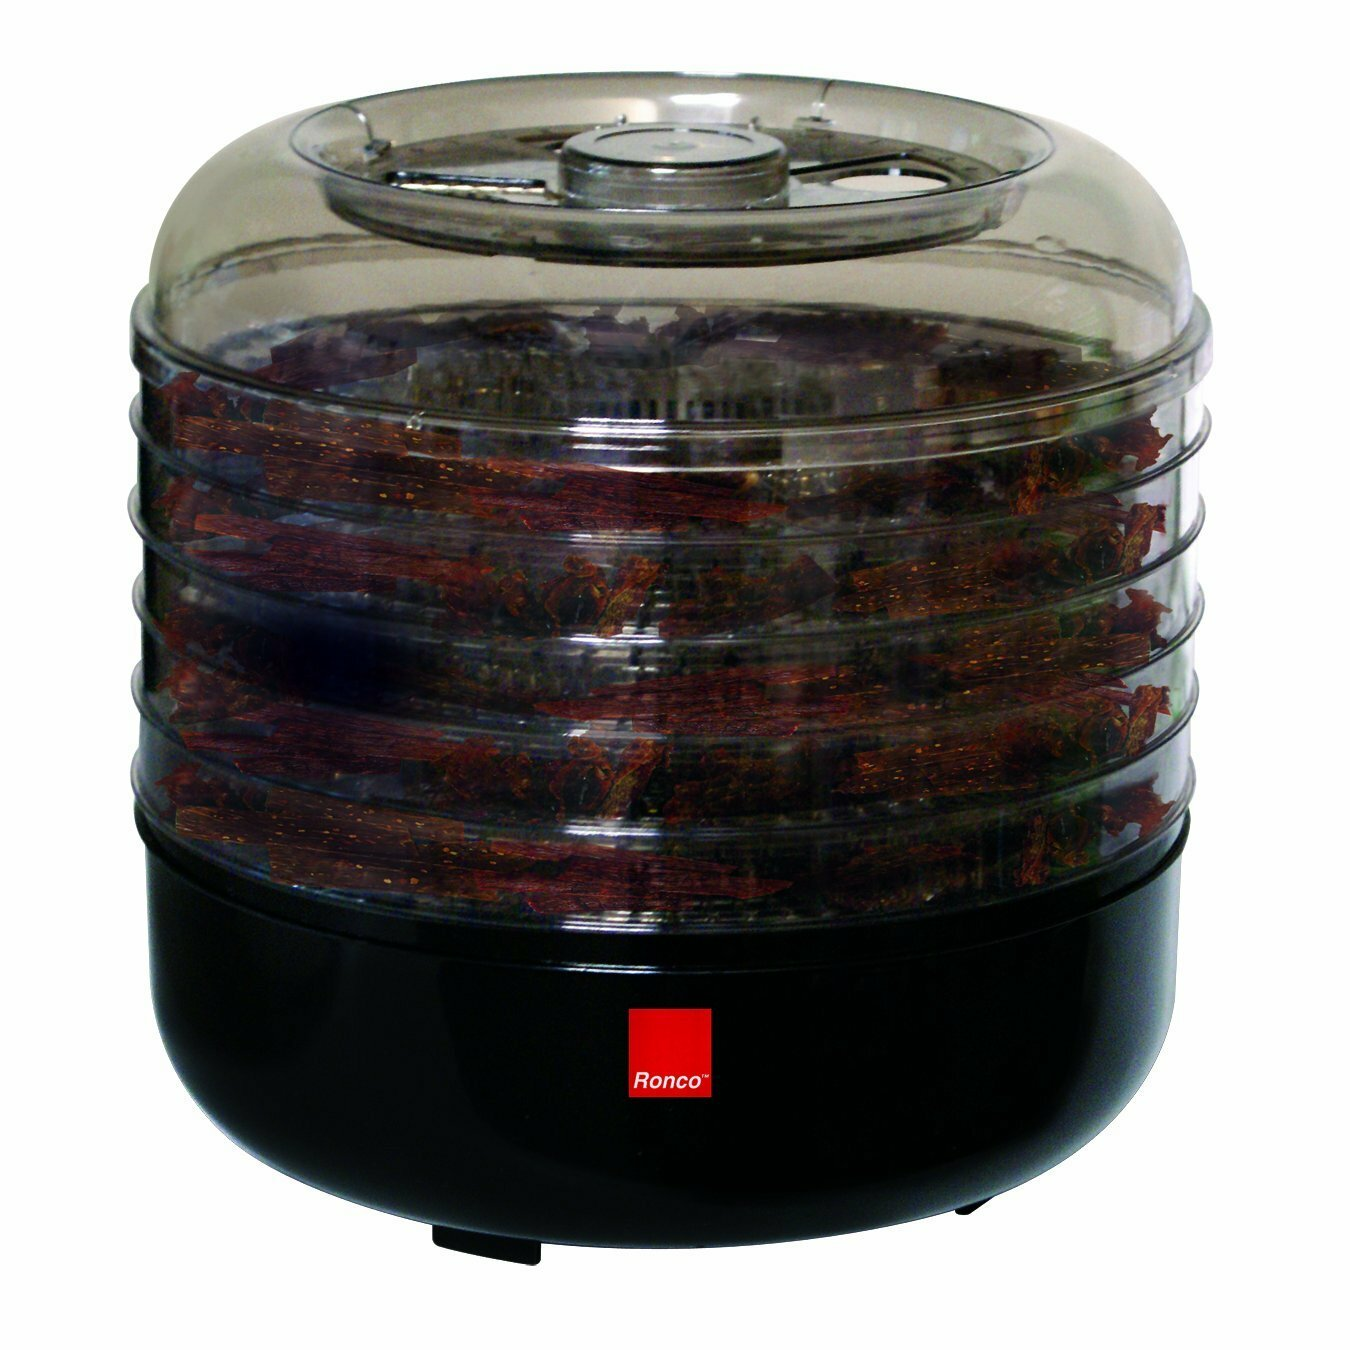 ronco beef machine review